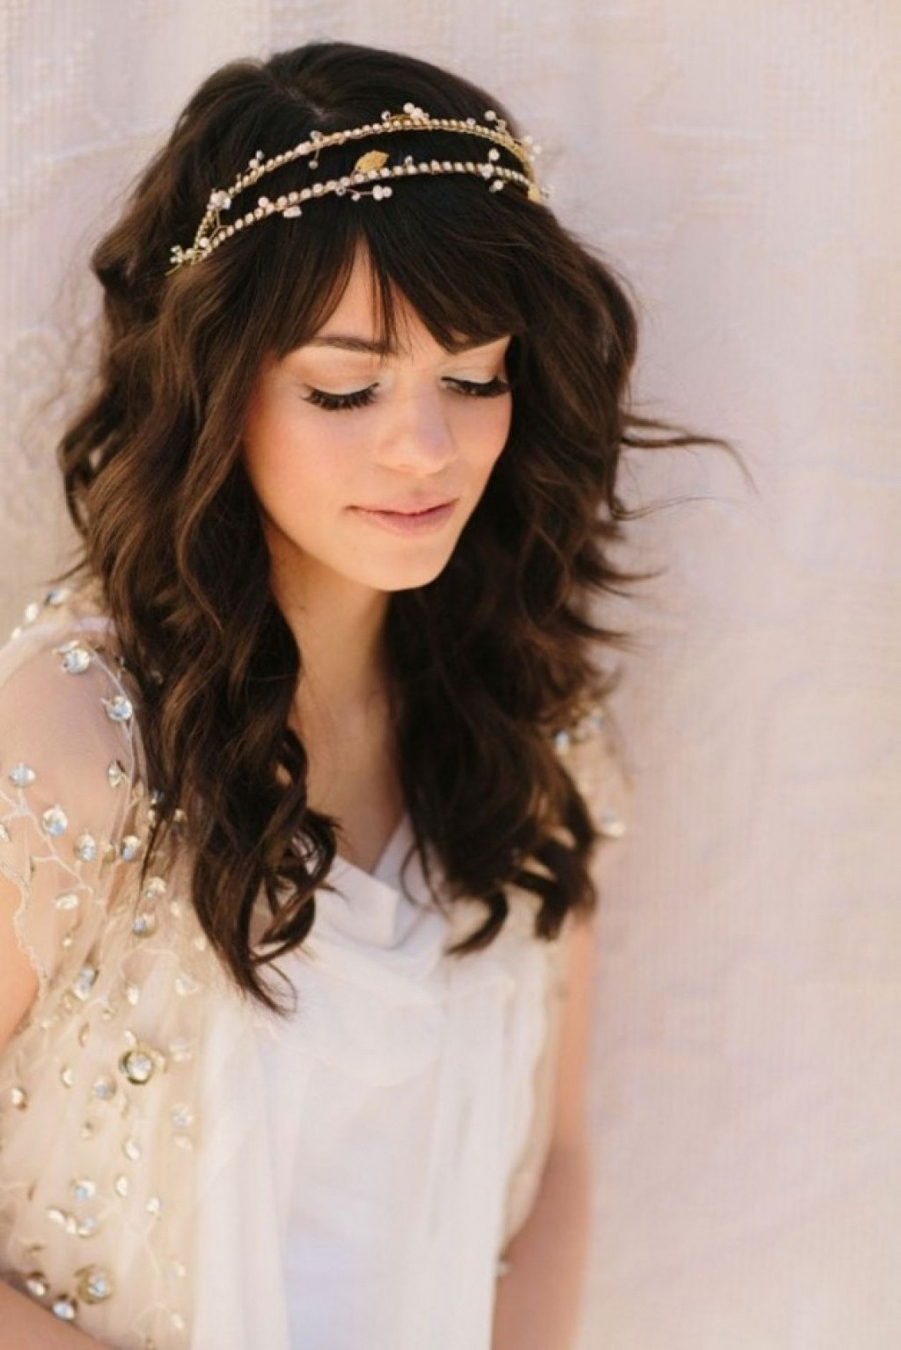 Wedding Hair : Simple Wedding Hair Styles With Bangs Designs 2018 Intended For Preferred Half Up Half Down With Fringe Wedding Hairstyles (View 14 of 15)